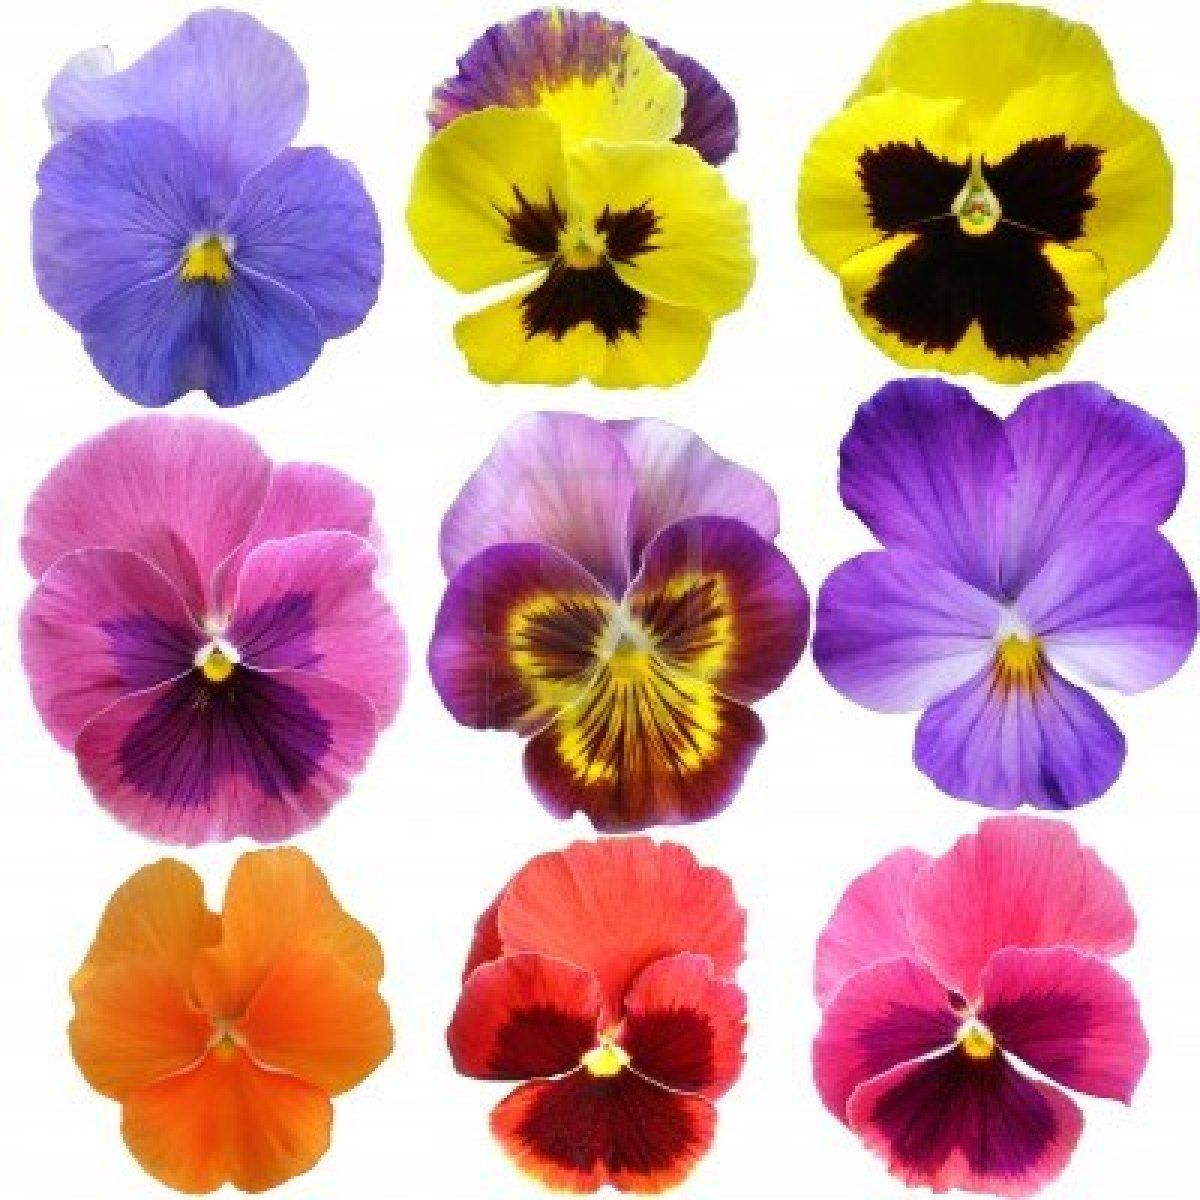 Google Image Result For Https I Pinimg Com Originals A5 30 E2 A530e25f5905c9a5d89128ea130677b9 J In 2020 Flower Painting Pansies Flowers Watercolor Flowers